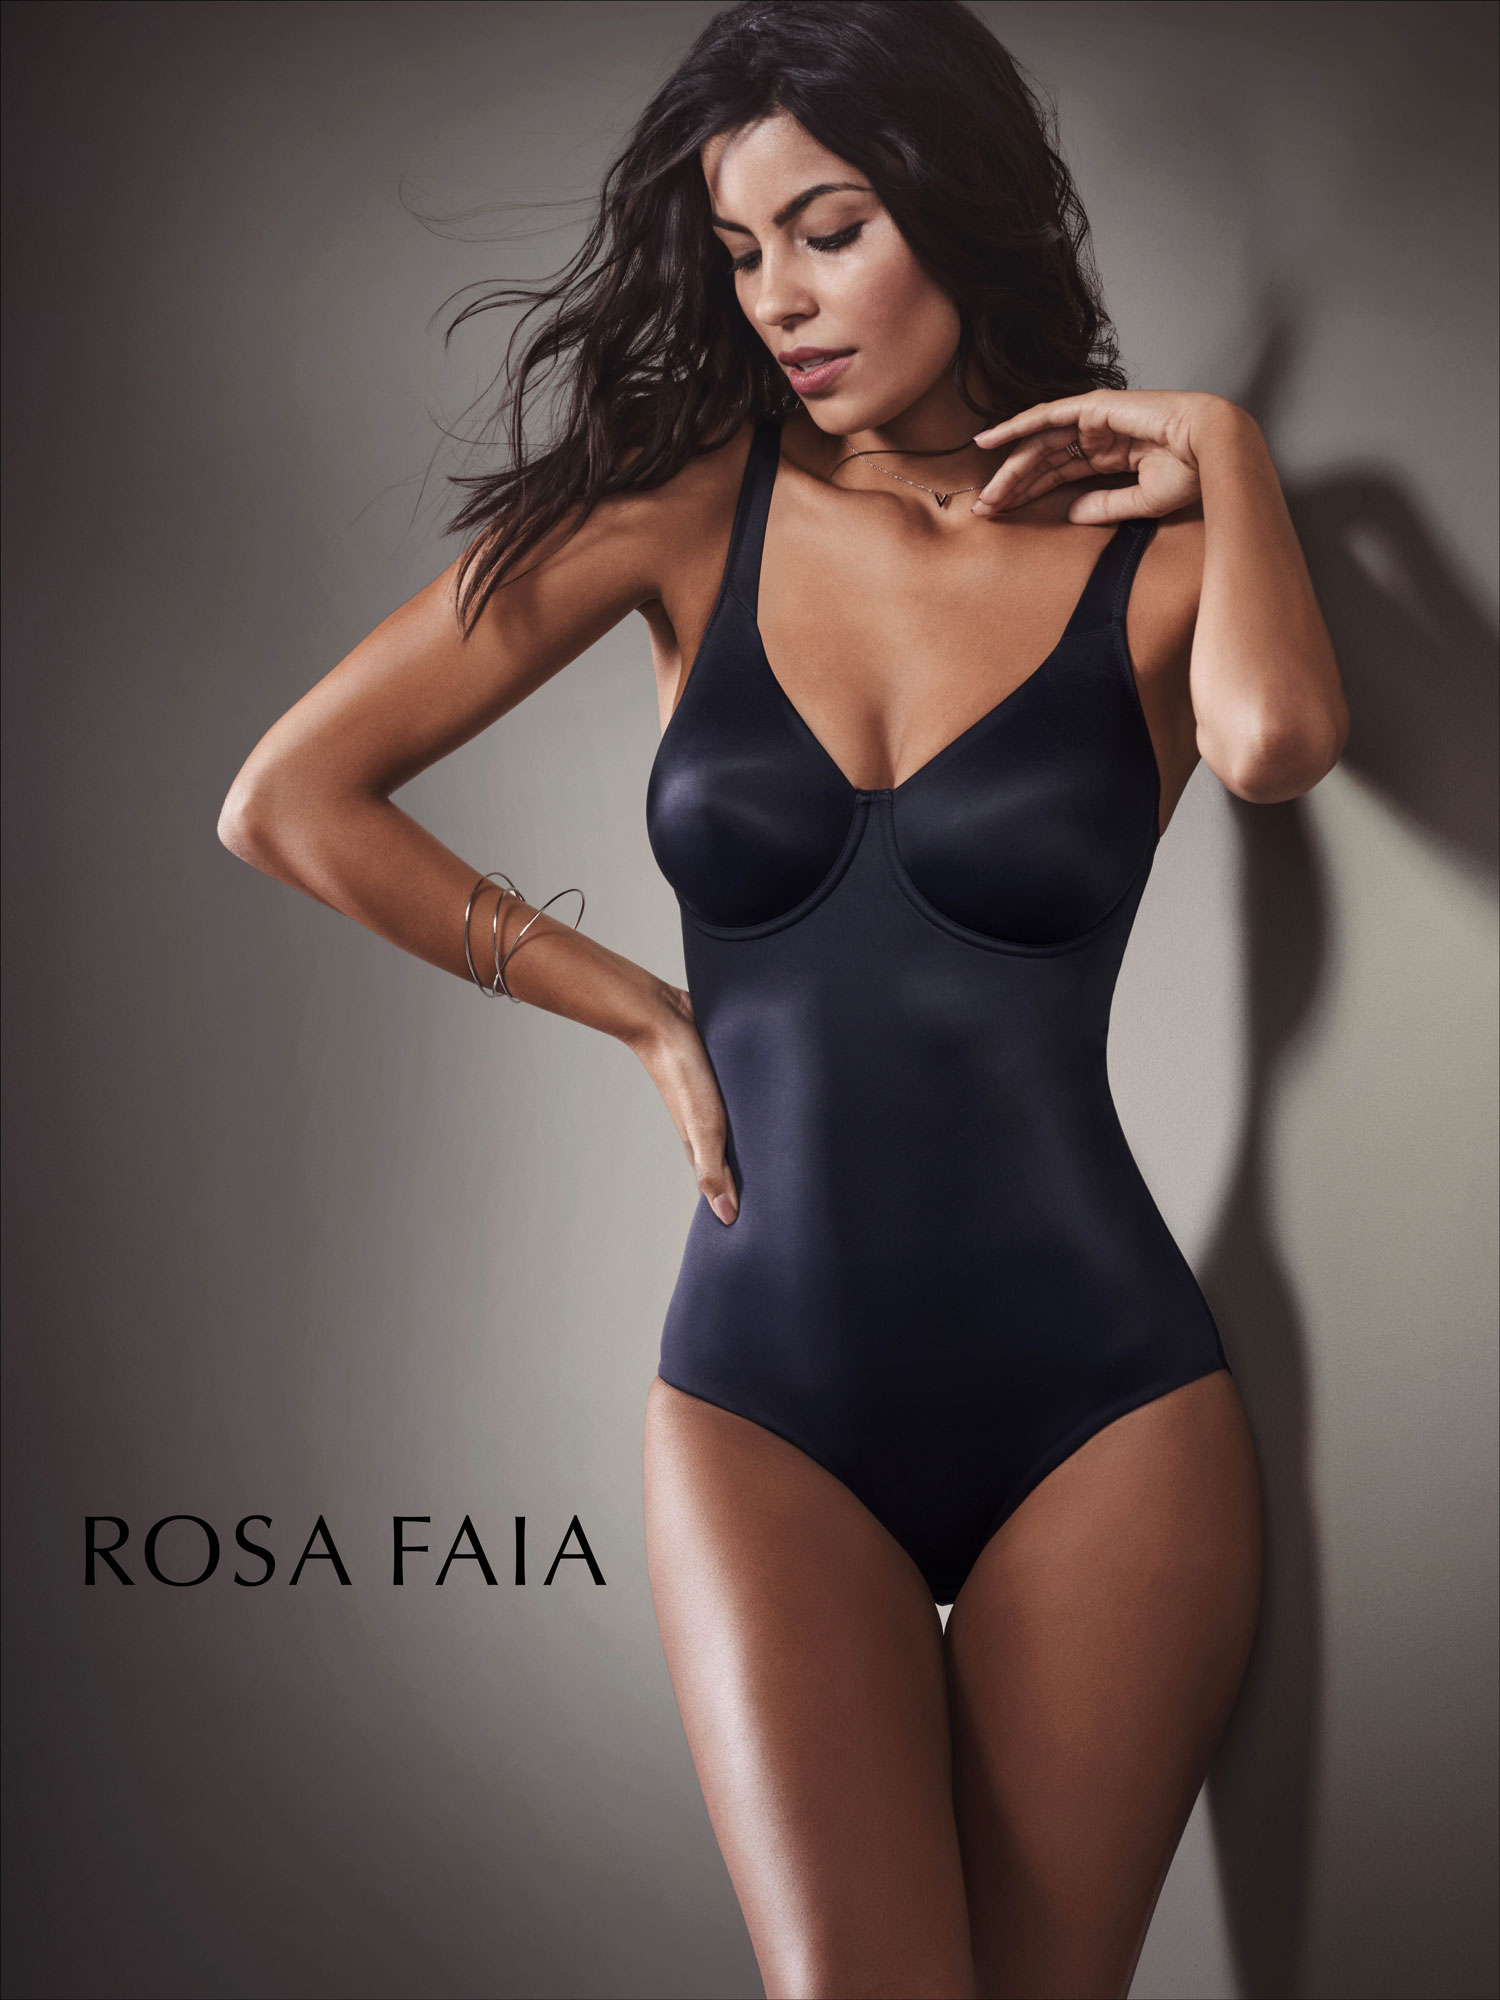 Astrid M Obert presents Rosa Faia Lingery by Anita